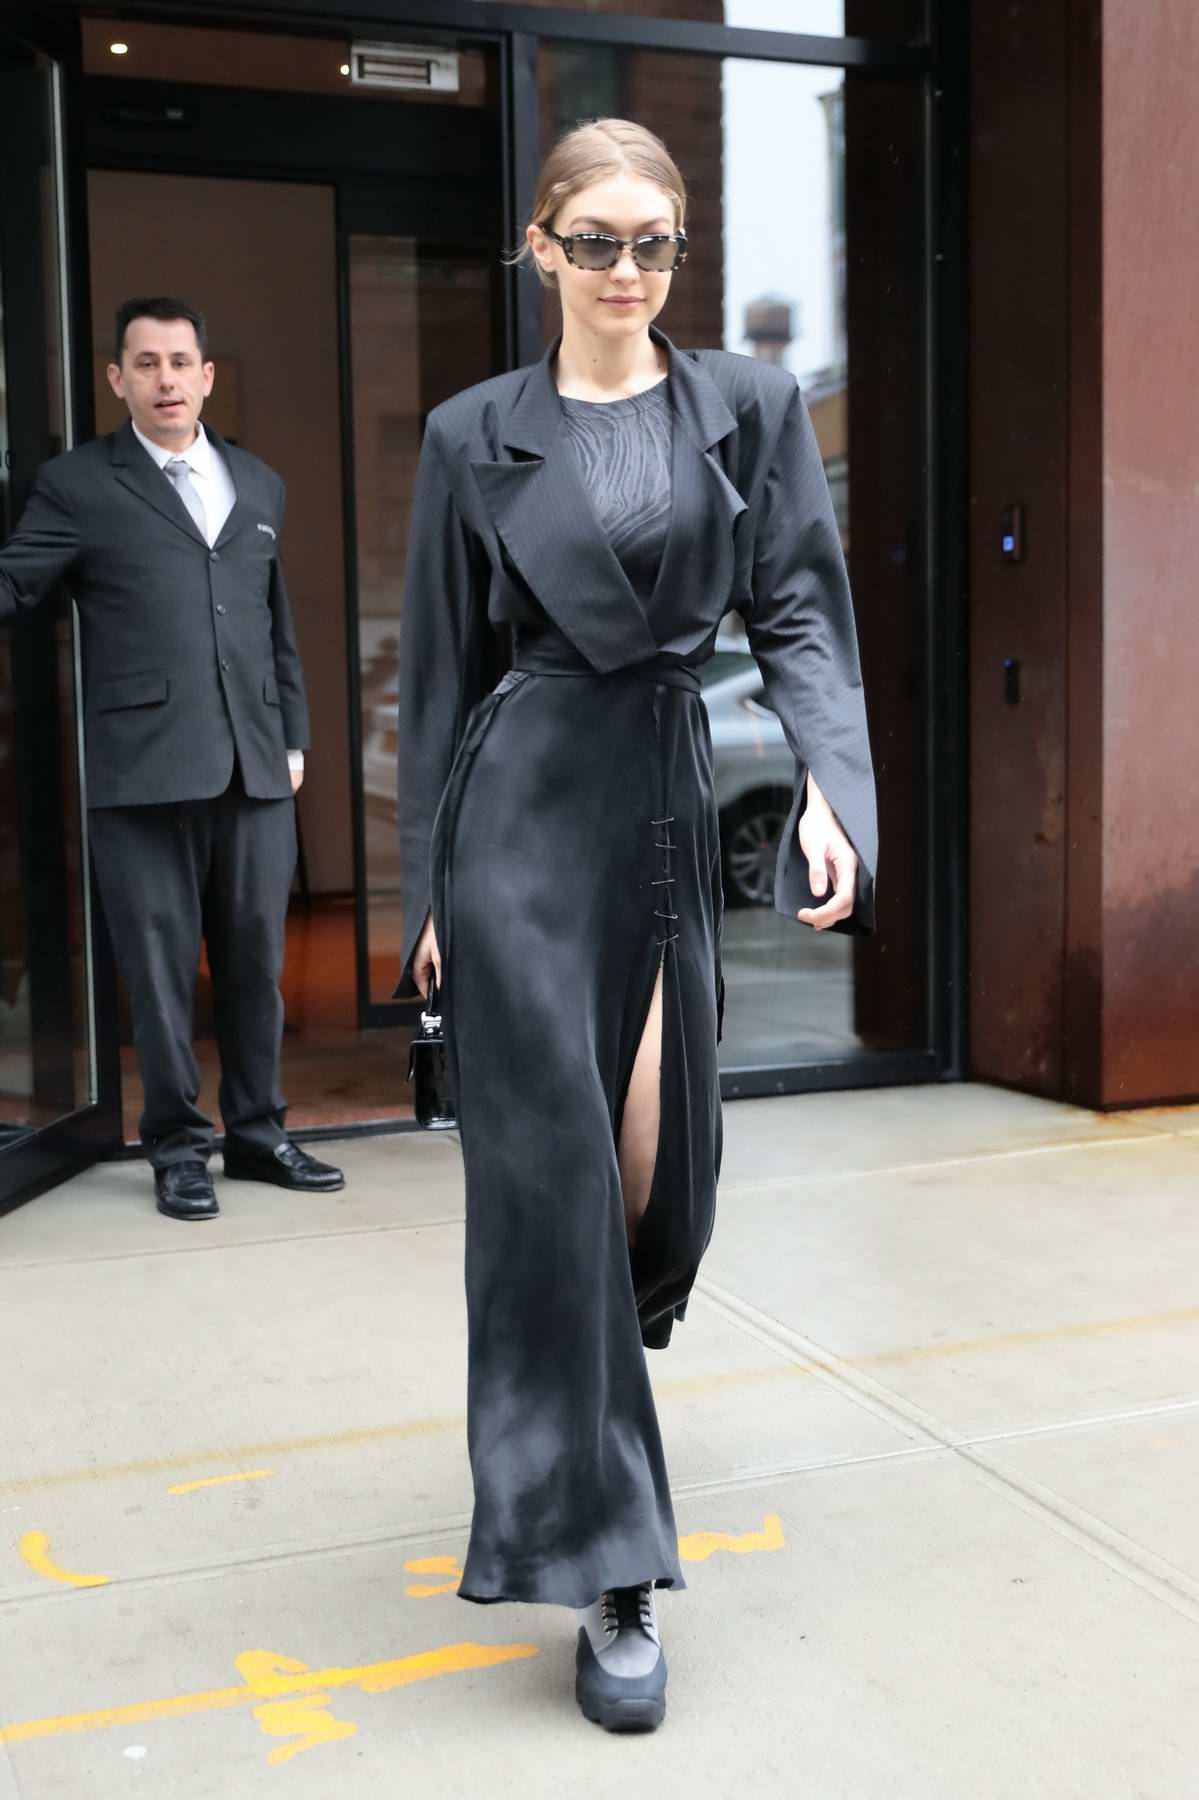 Gigi Hadid looking sleek and stylish leaving her apartment in New York City